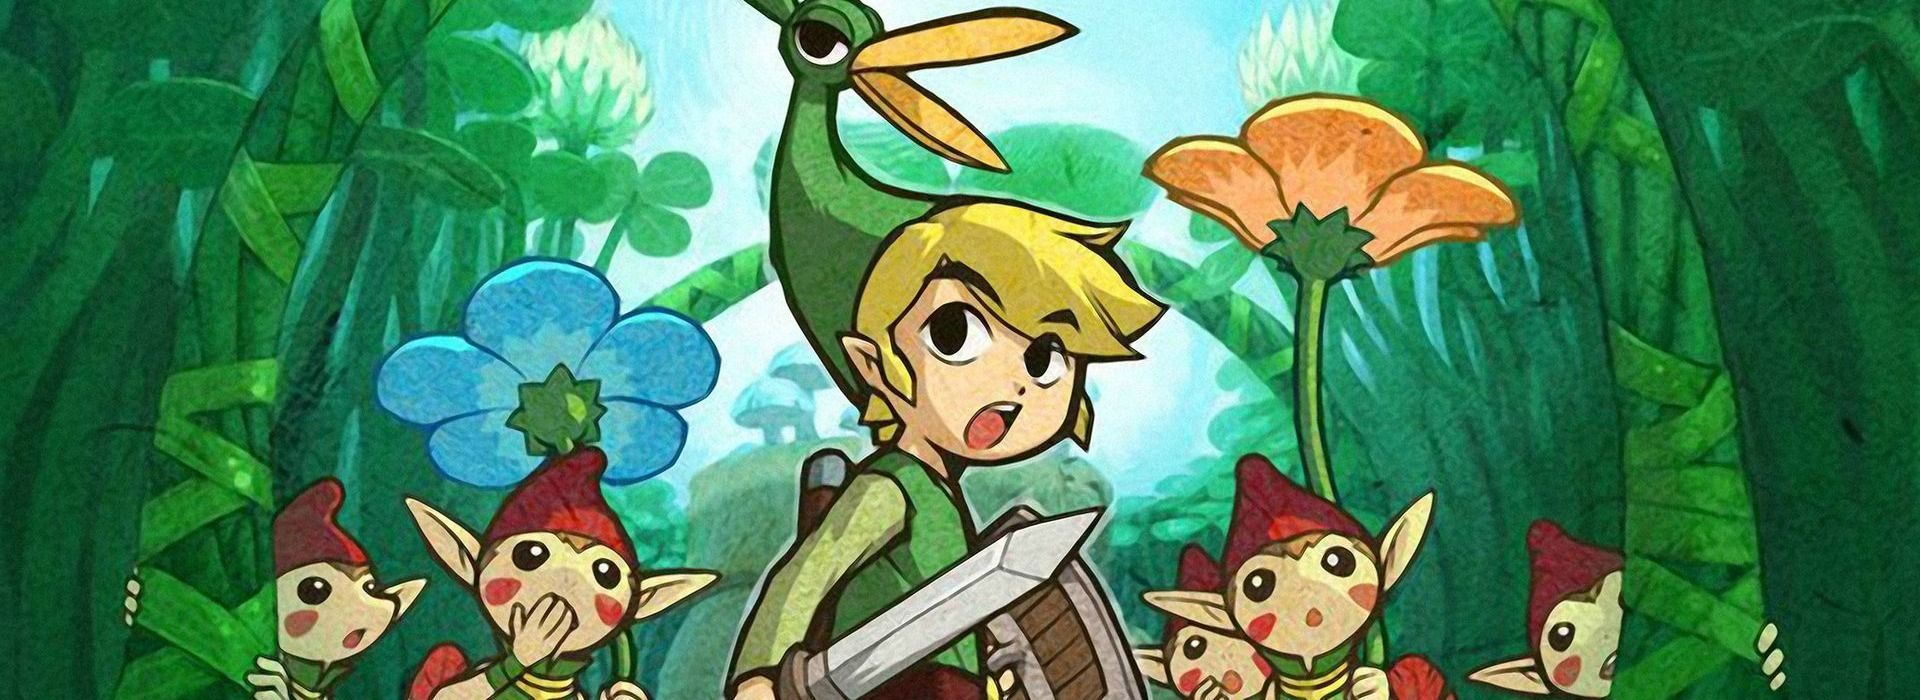 6263 - ¿Cuánto sabes de The Legend of Zelda: Minish Cap?